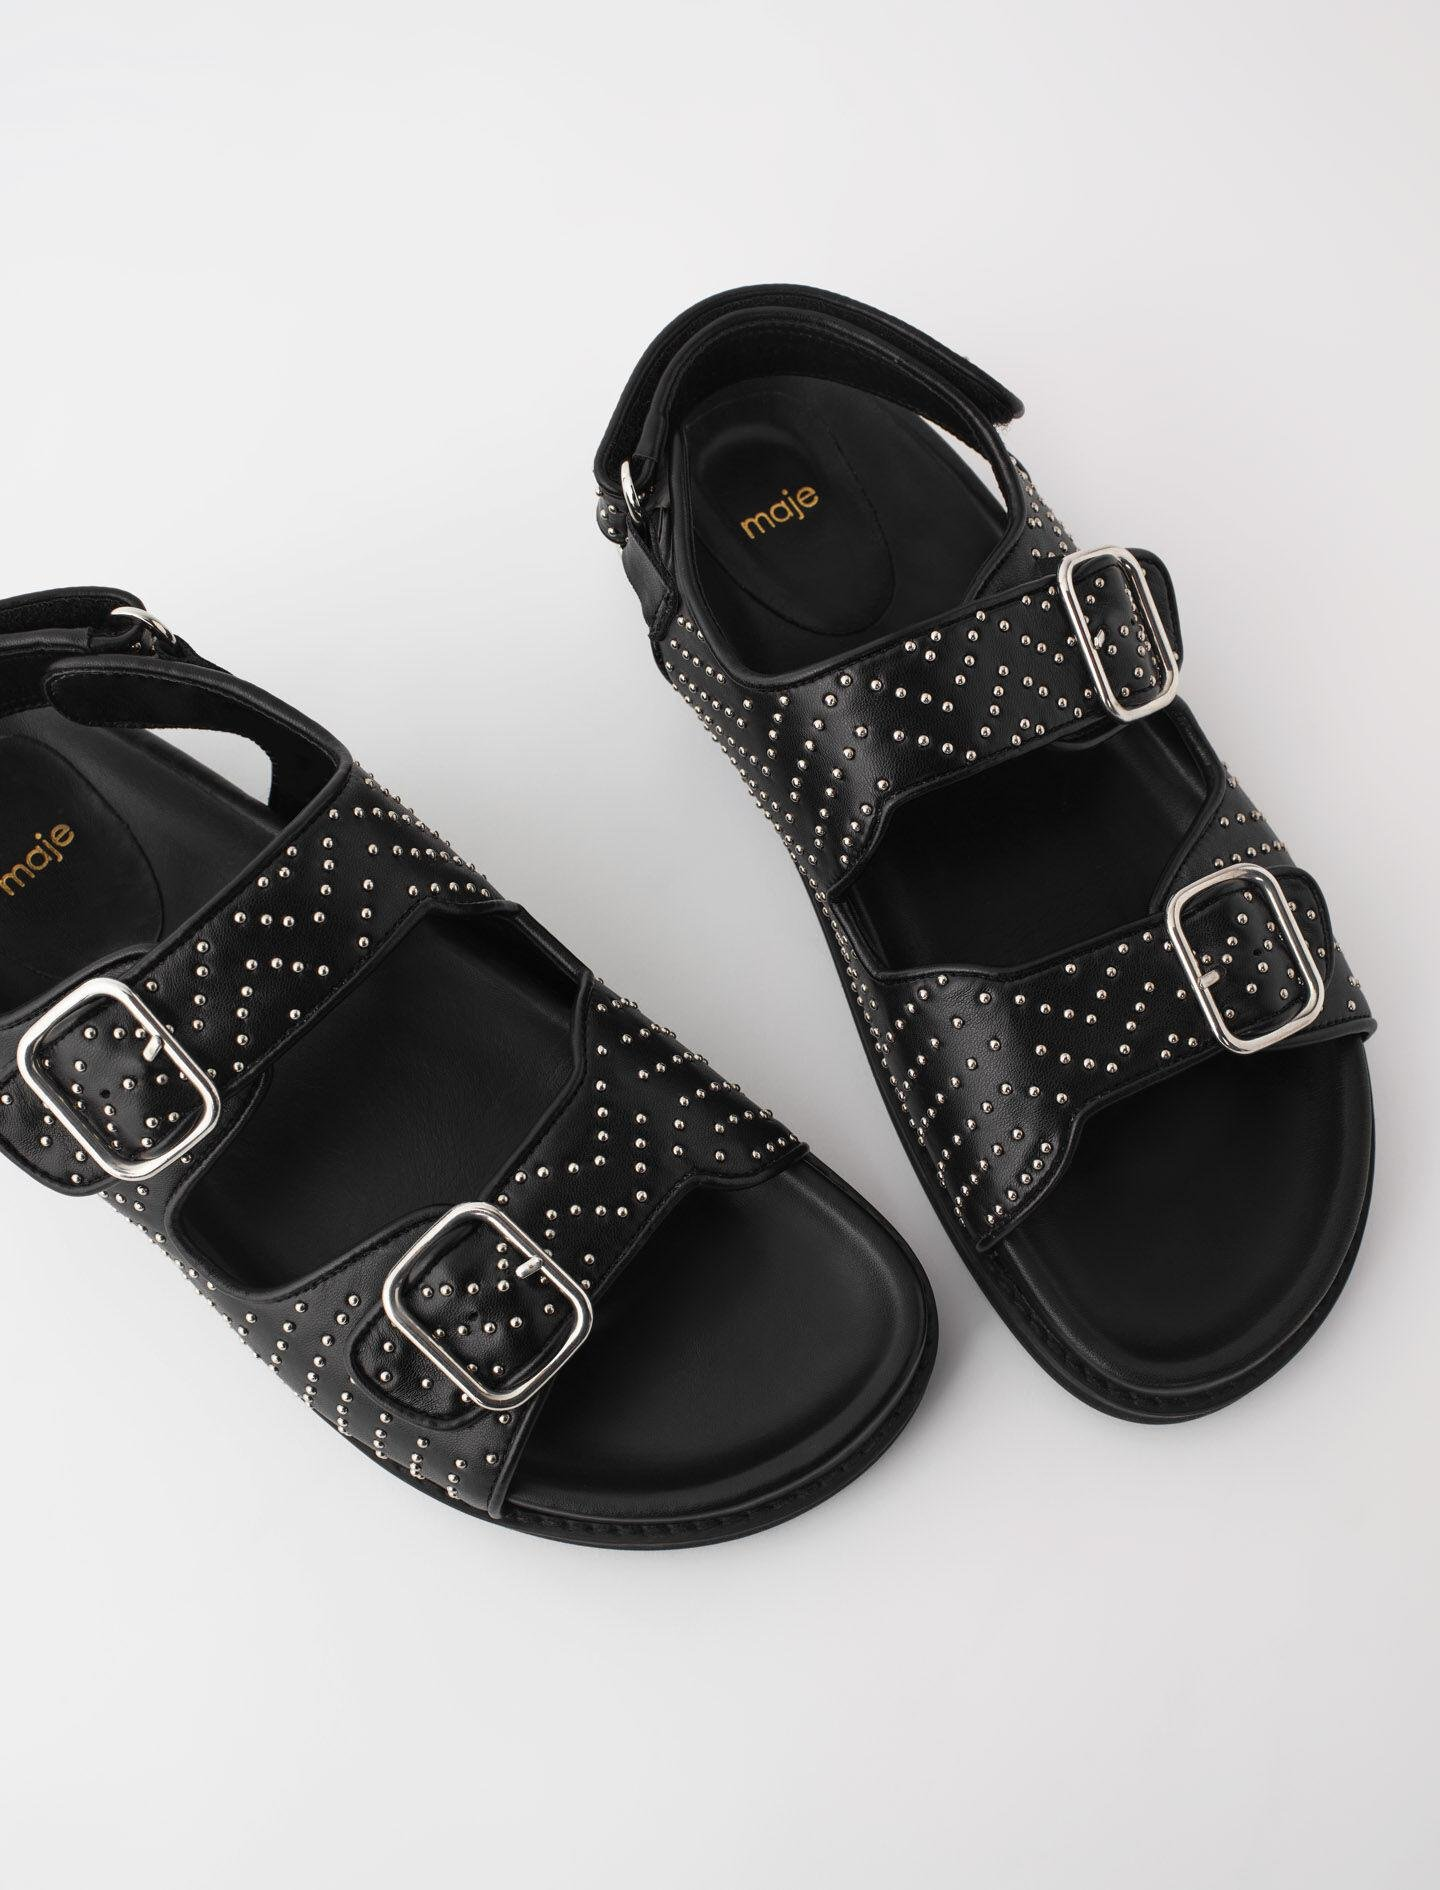 STUDDED SANDALS WITH BUCKLES 3